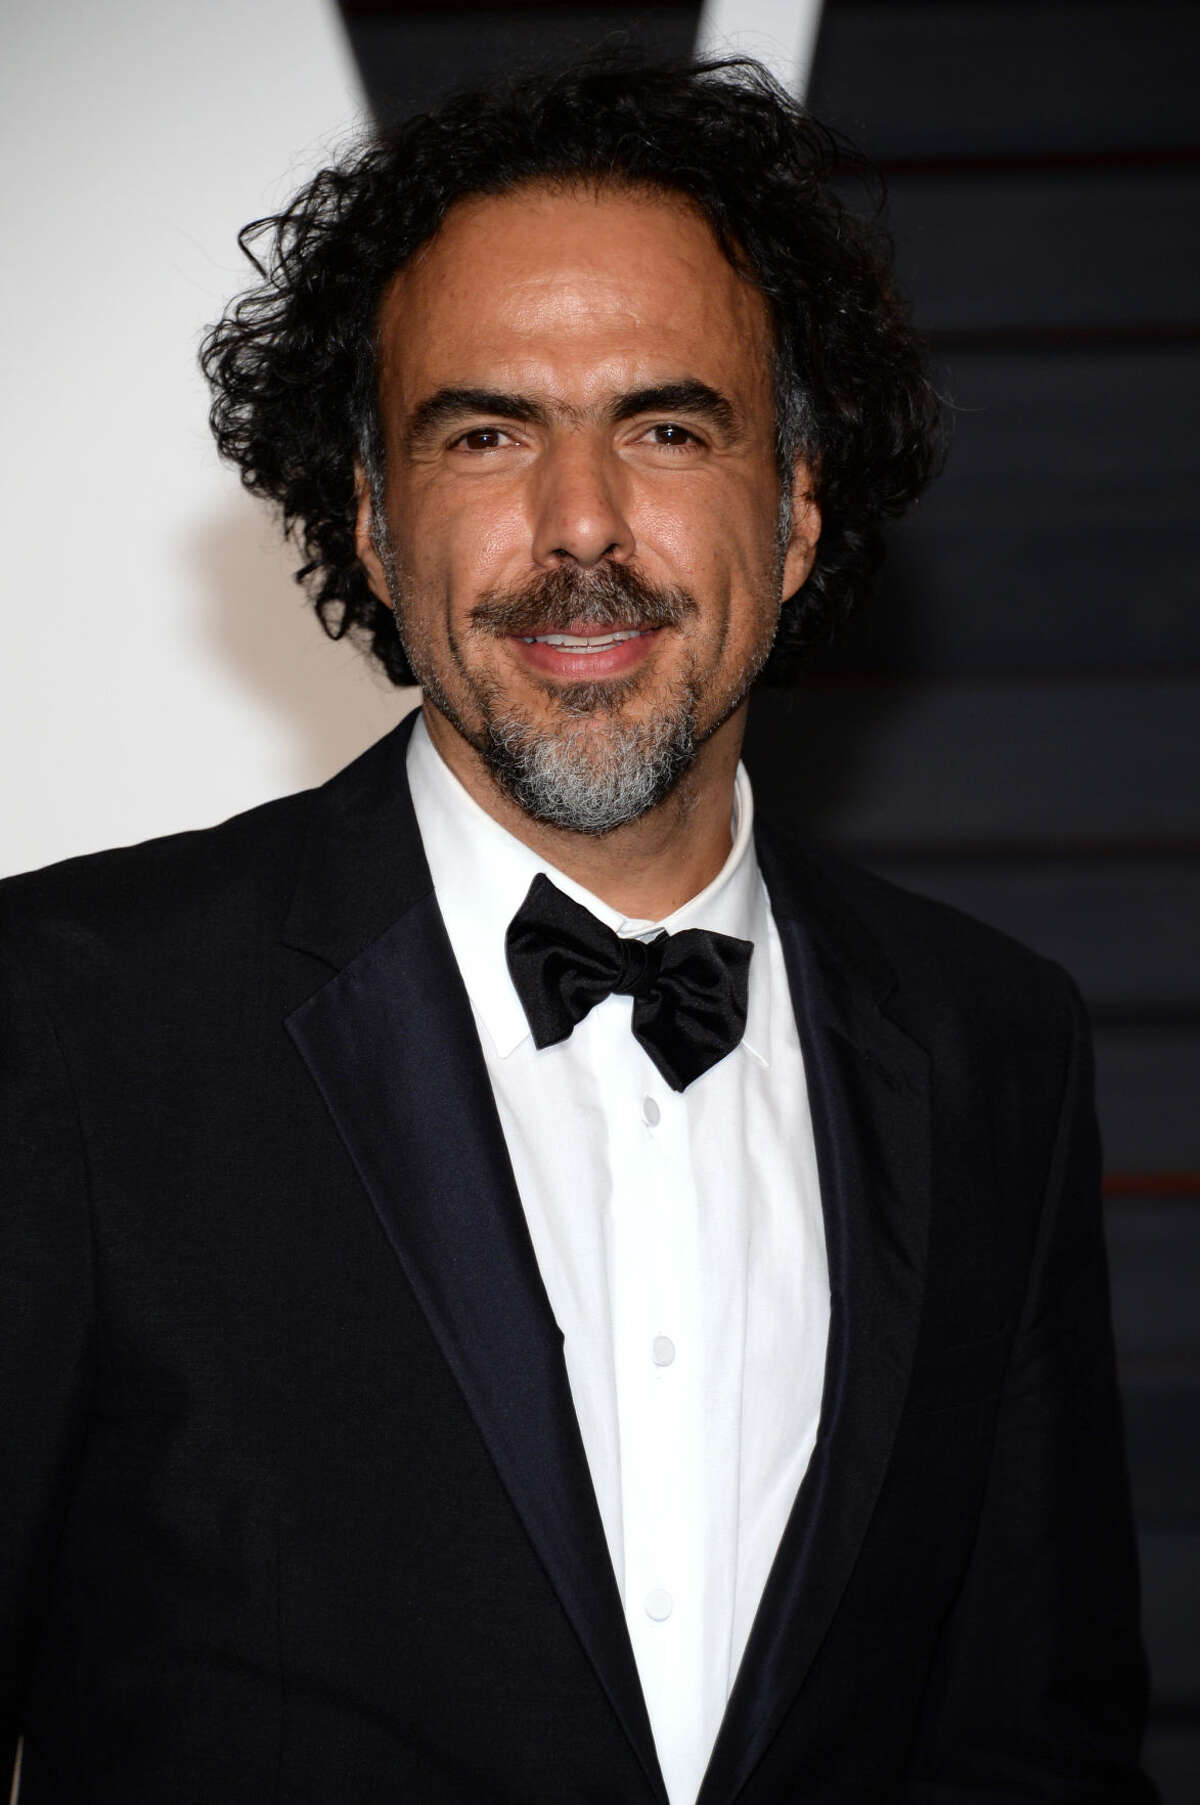 Alejandro G. Inarritu arrives at the 2015 Vanity Fair Oscar Party, early Monday, Feb. 23, 2015, in Beverly Hills, Calif. (Photo by Evan Agostini/Invision/AP)